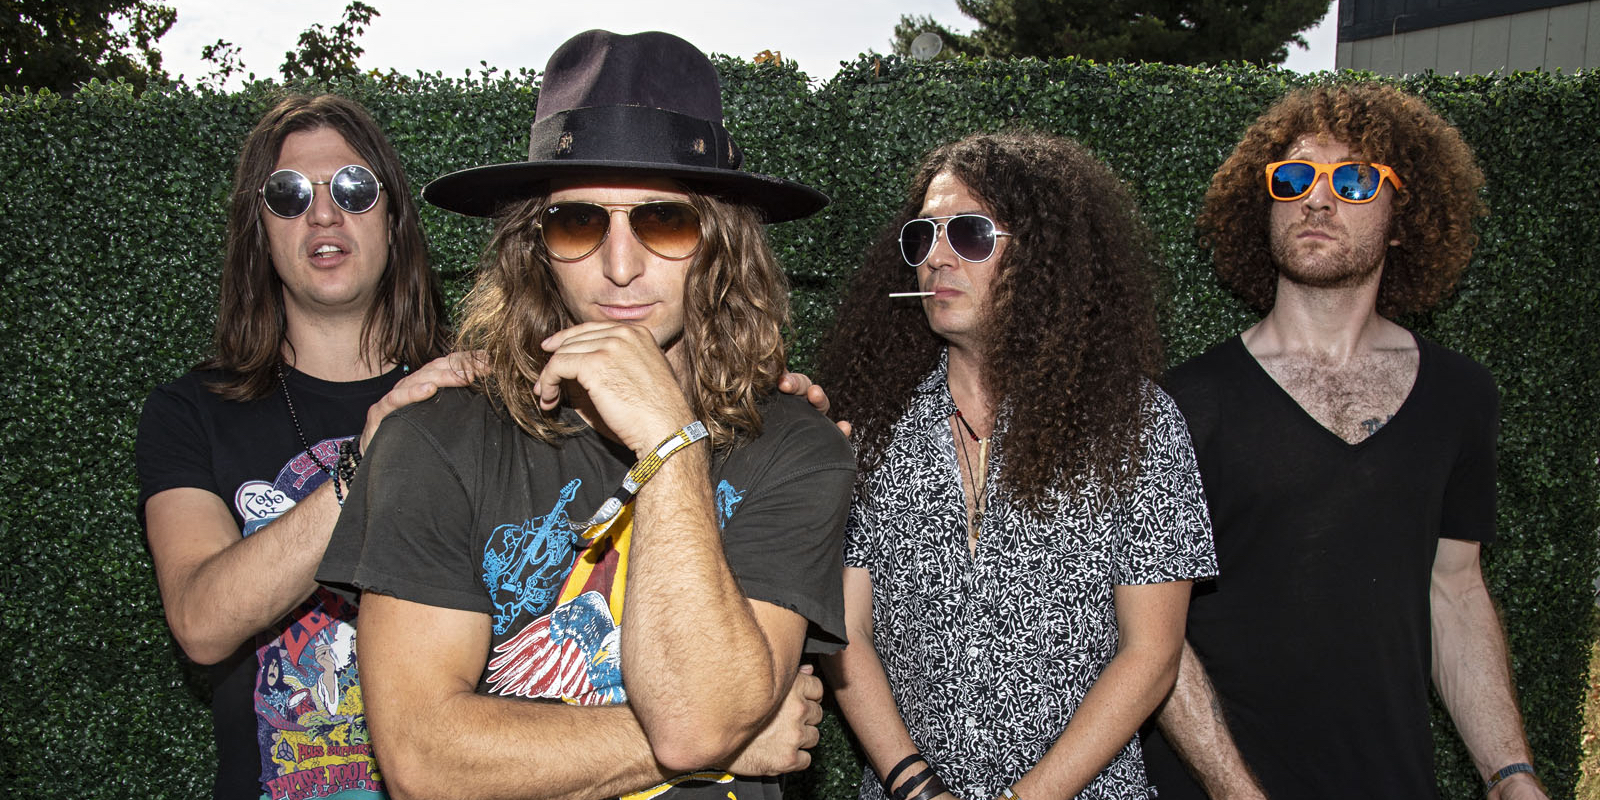 Dirty Honey is first unsigned band to hit No. 1 on Billboard's Mainstream Rock chart